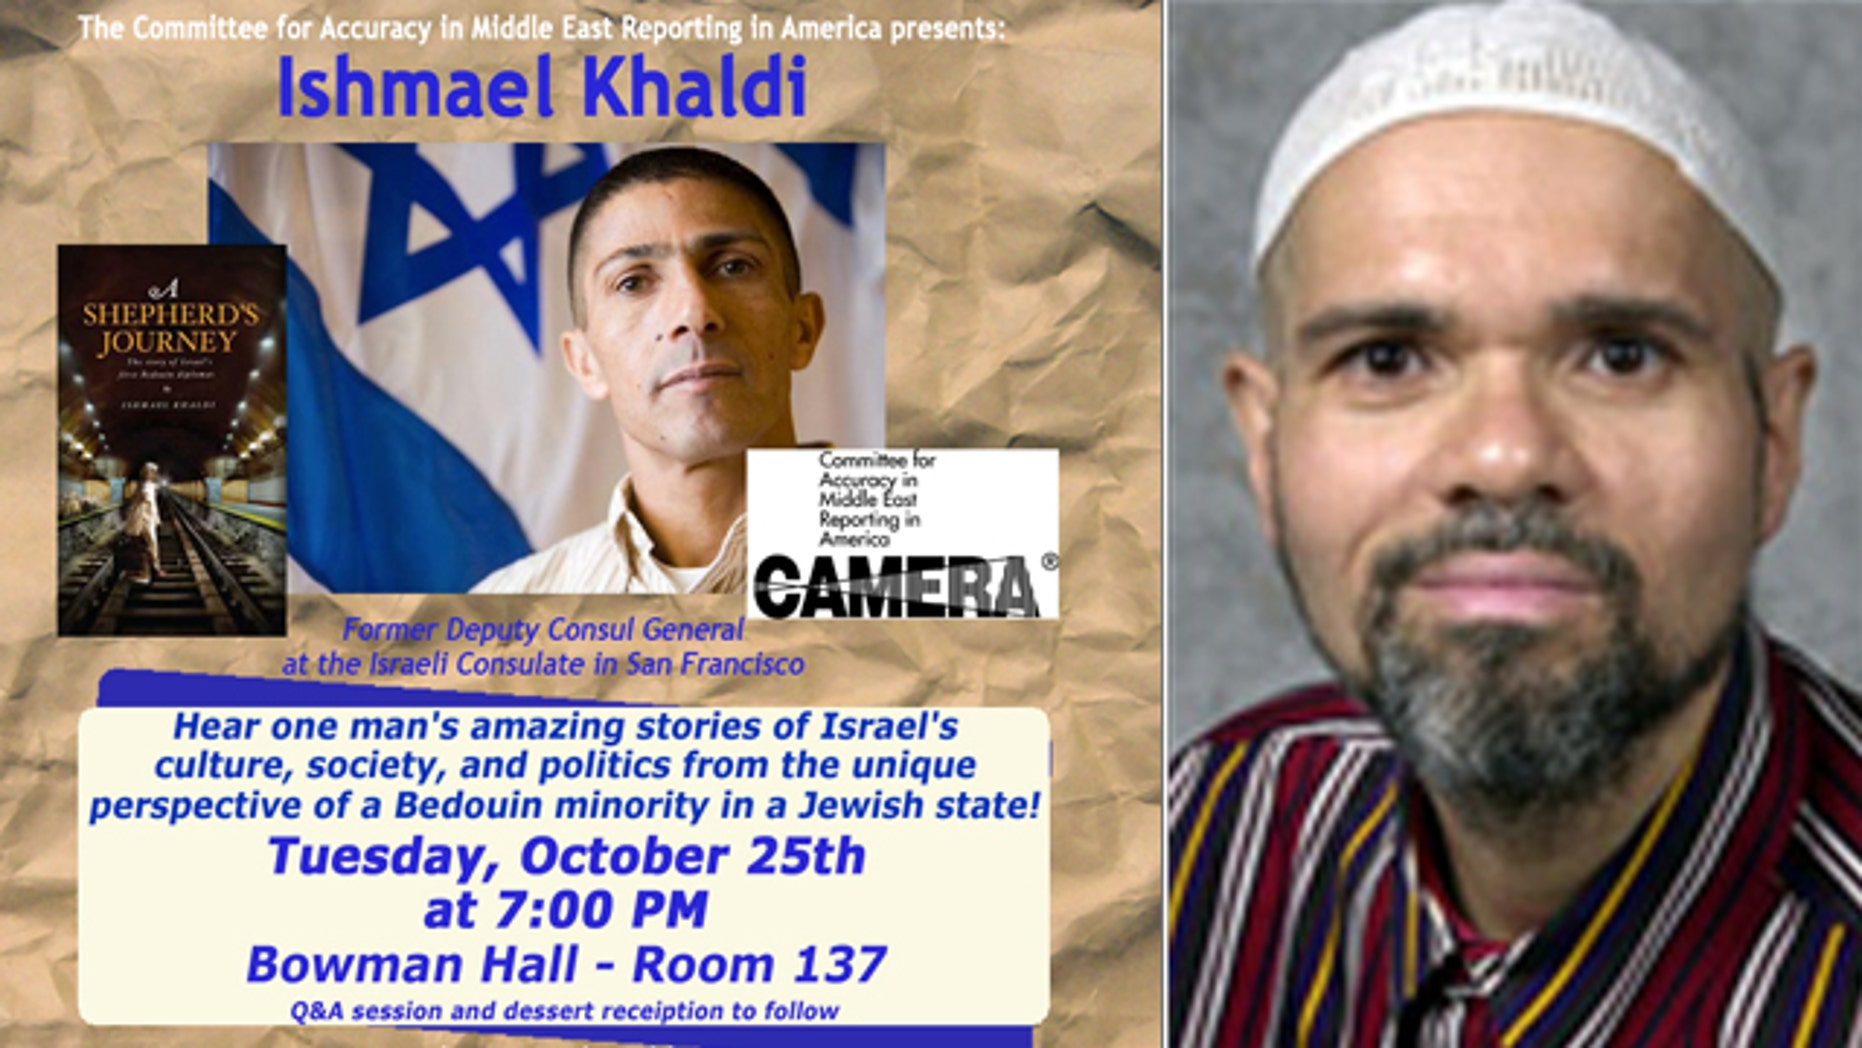 """Kent State University history professor Julio Pino, right, shouted """"Death to Israel"""" at a presentation by Israeli consulate official Ismael Khaldi, seen in this flyer for the event."""